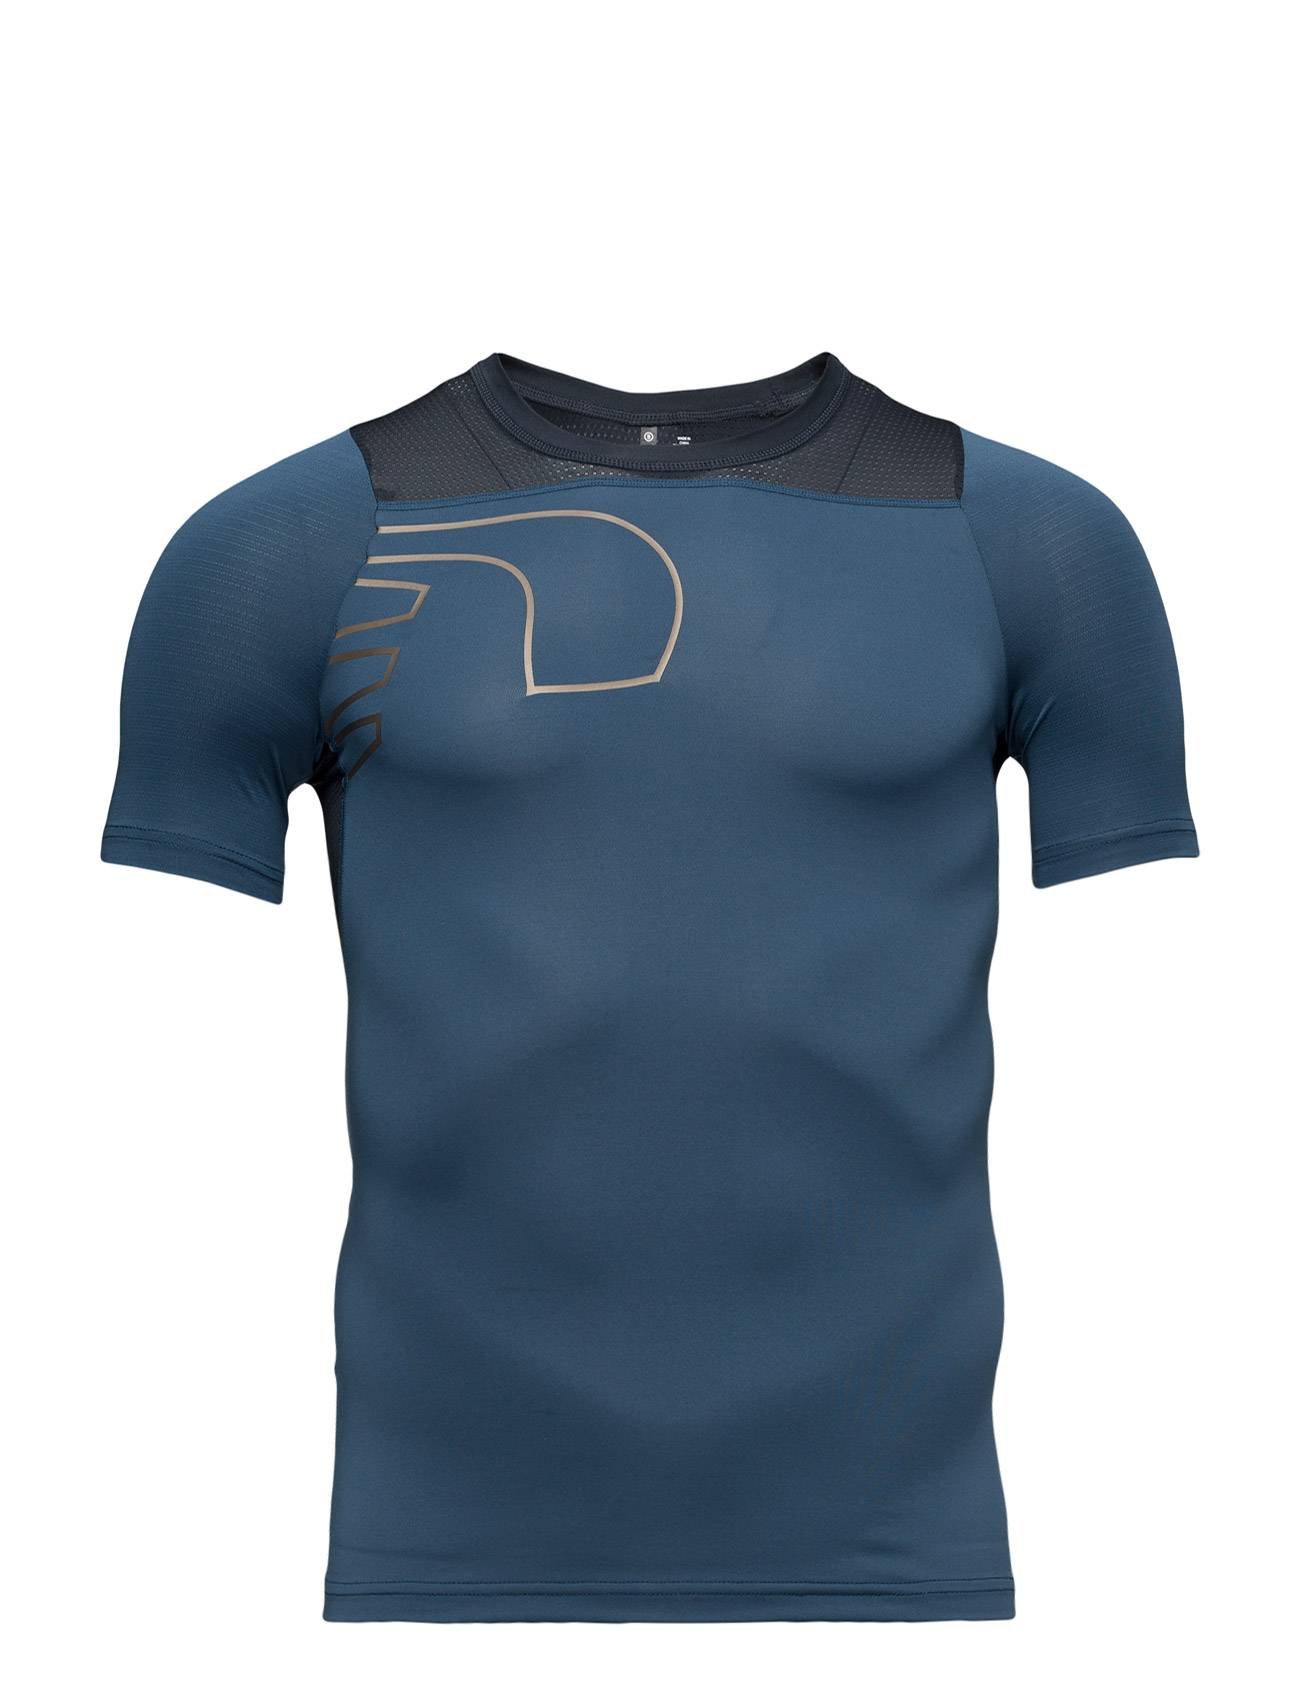 Newline Iconic Vent Stretch Tee